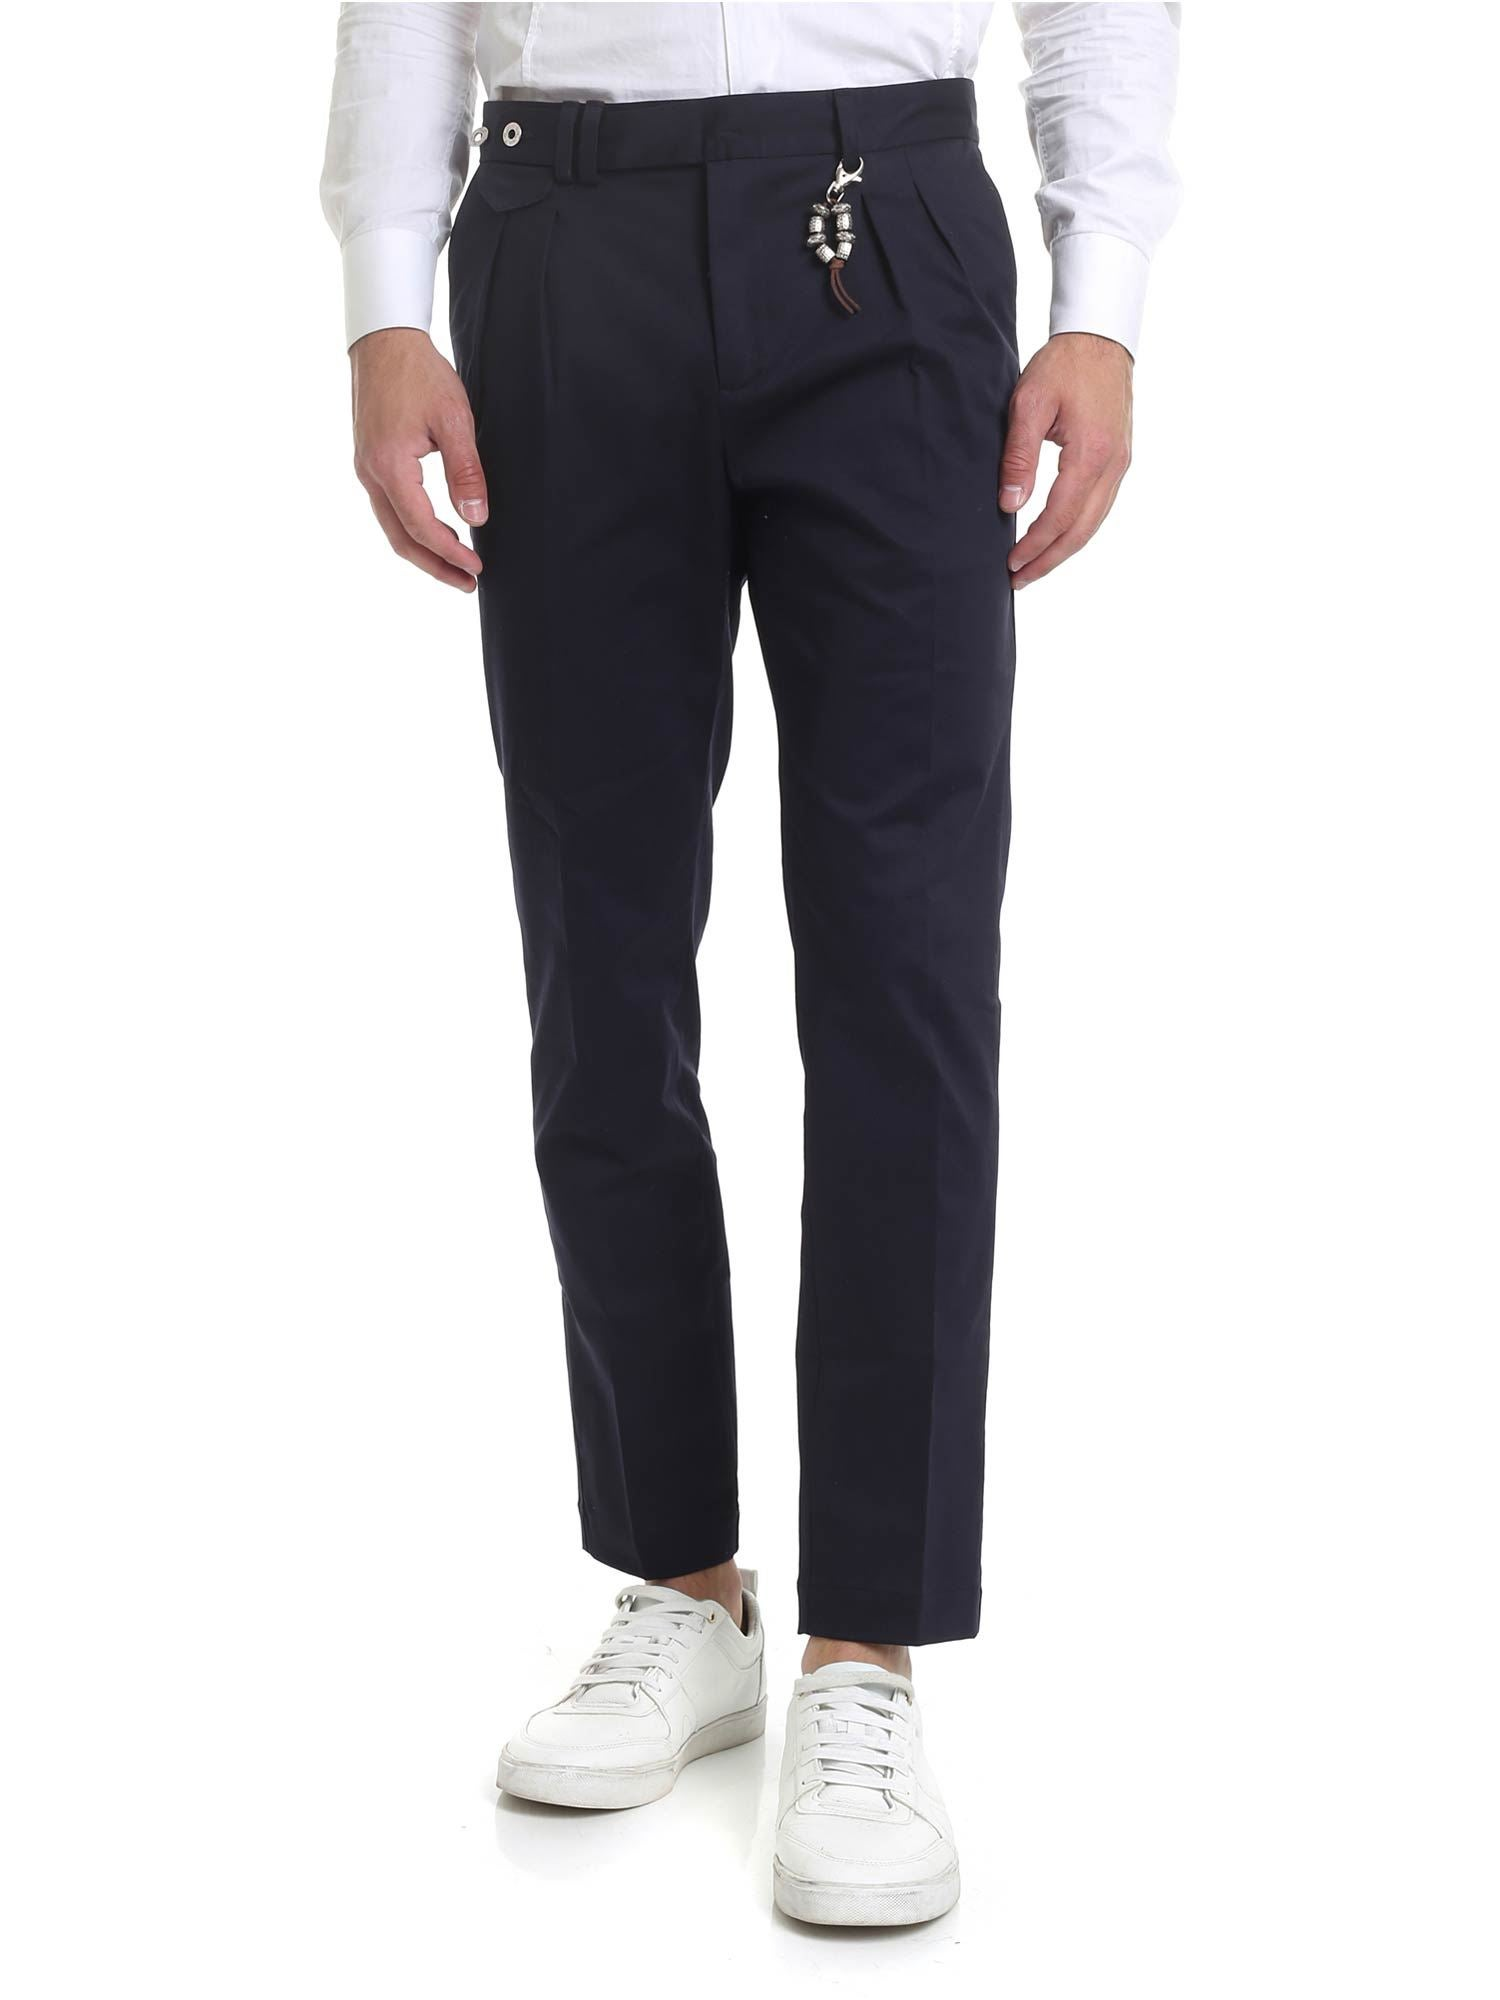 Image of Pantalone R96 blu scuro